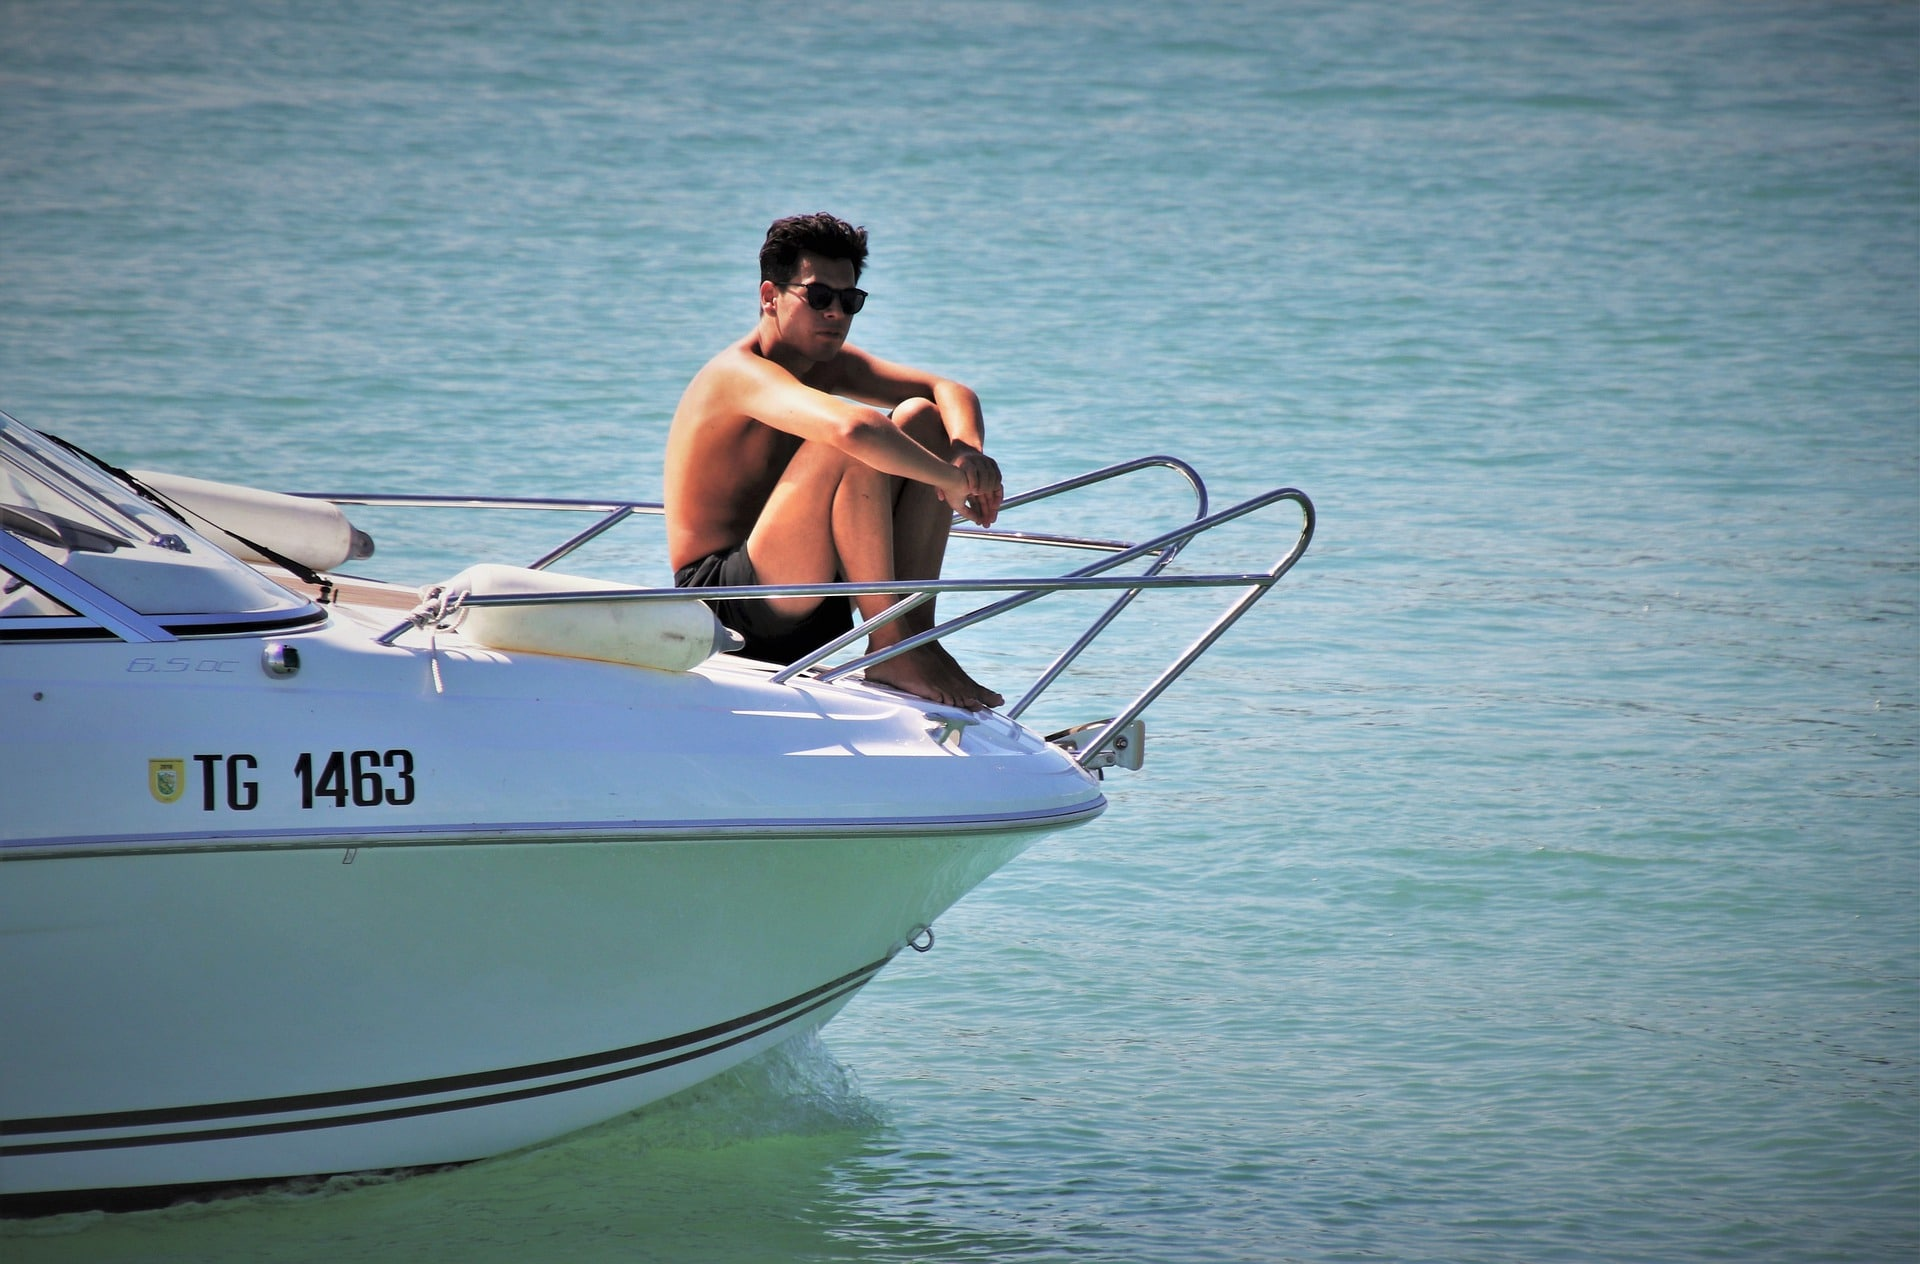 Man lounging in Boat